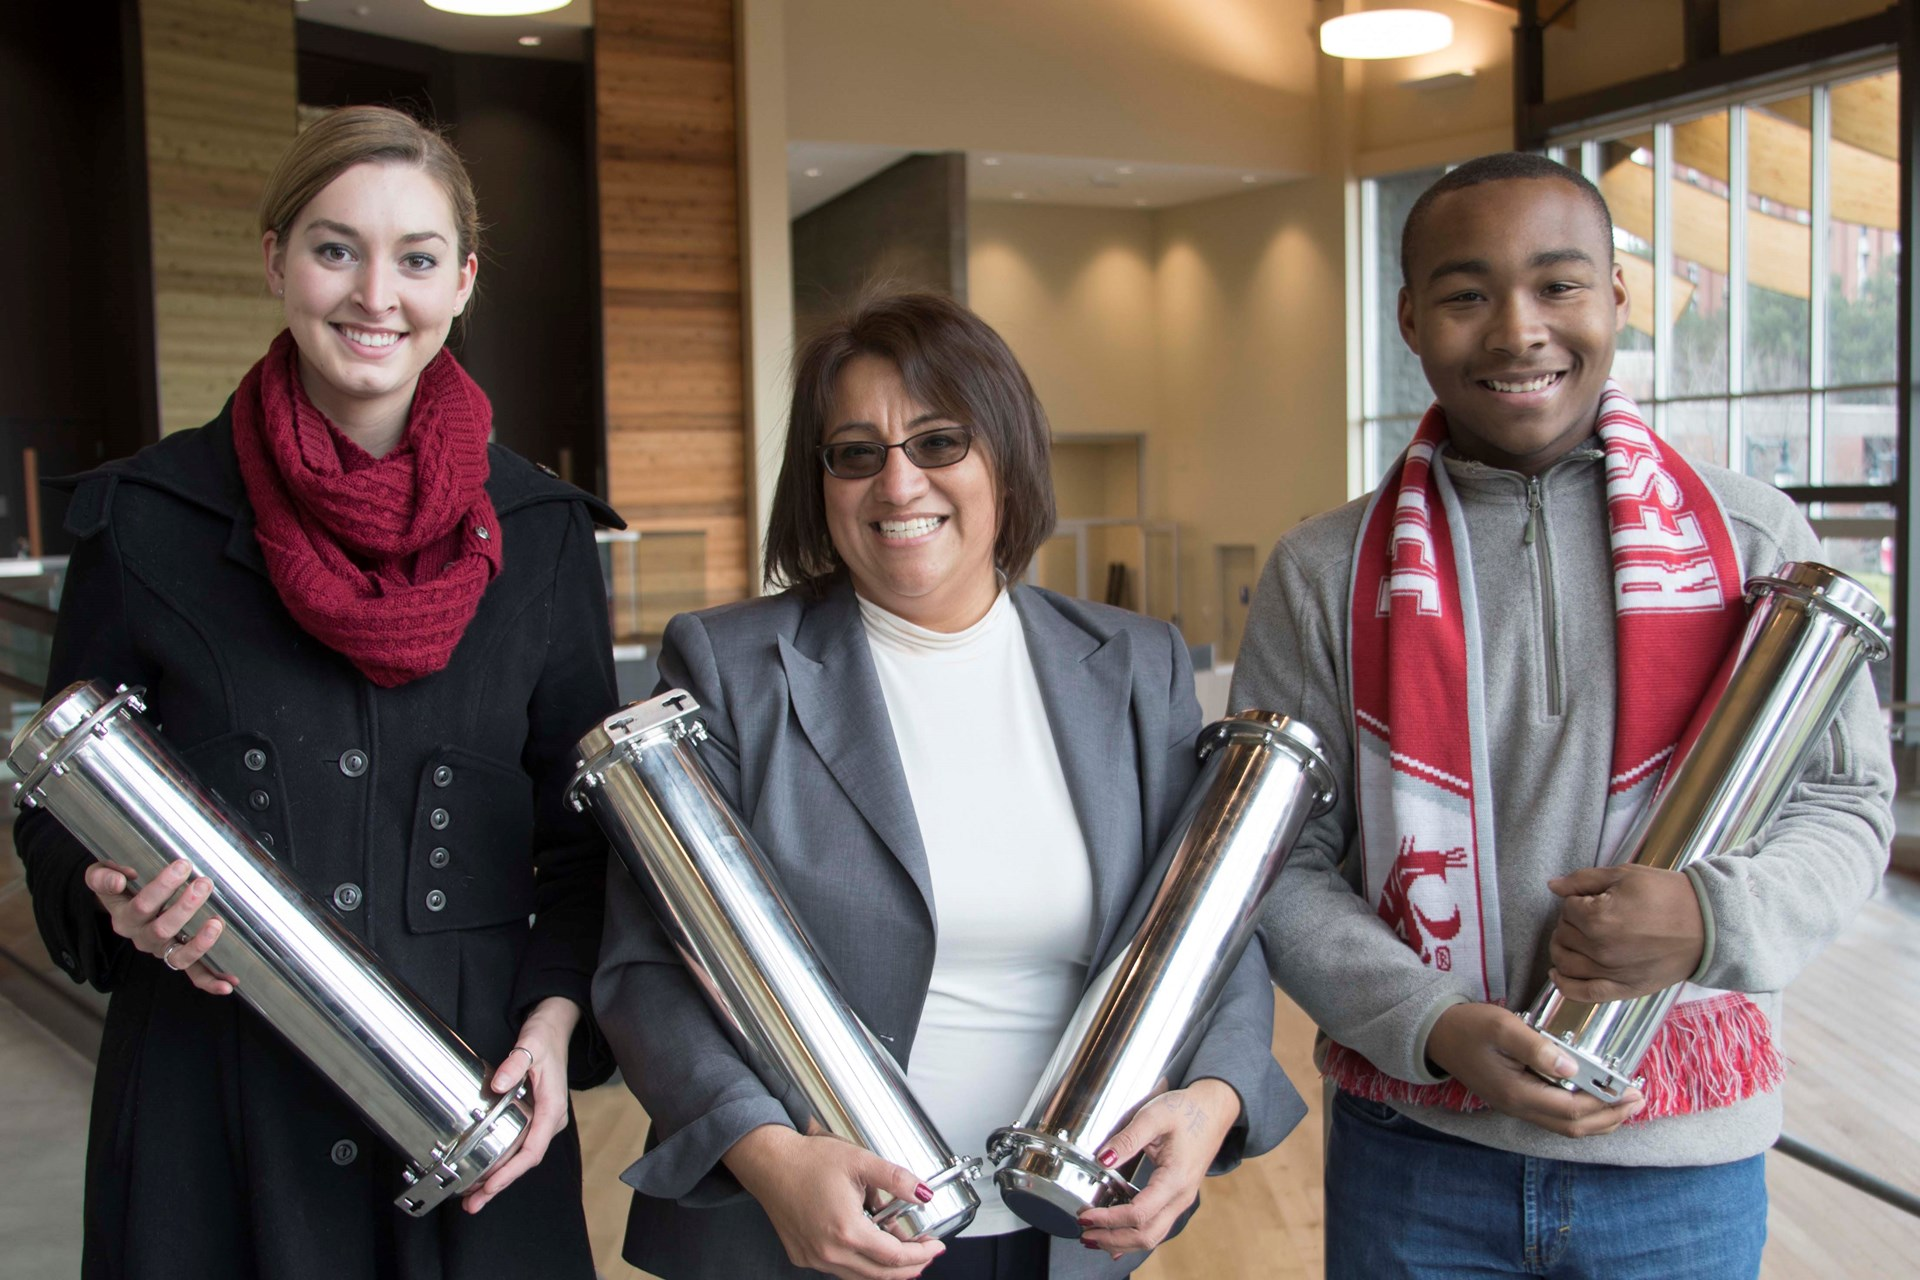 Mary Jo, student regent and ASWSU president holding time capsules